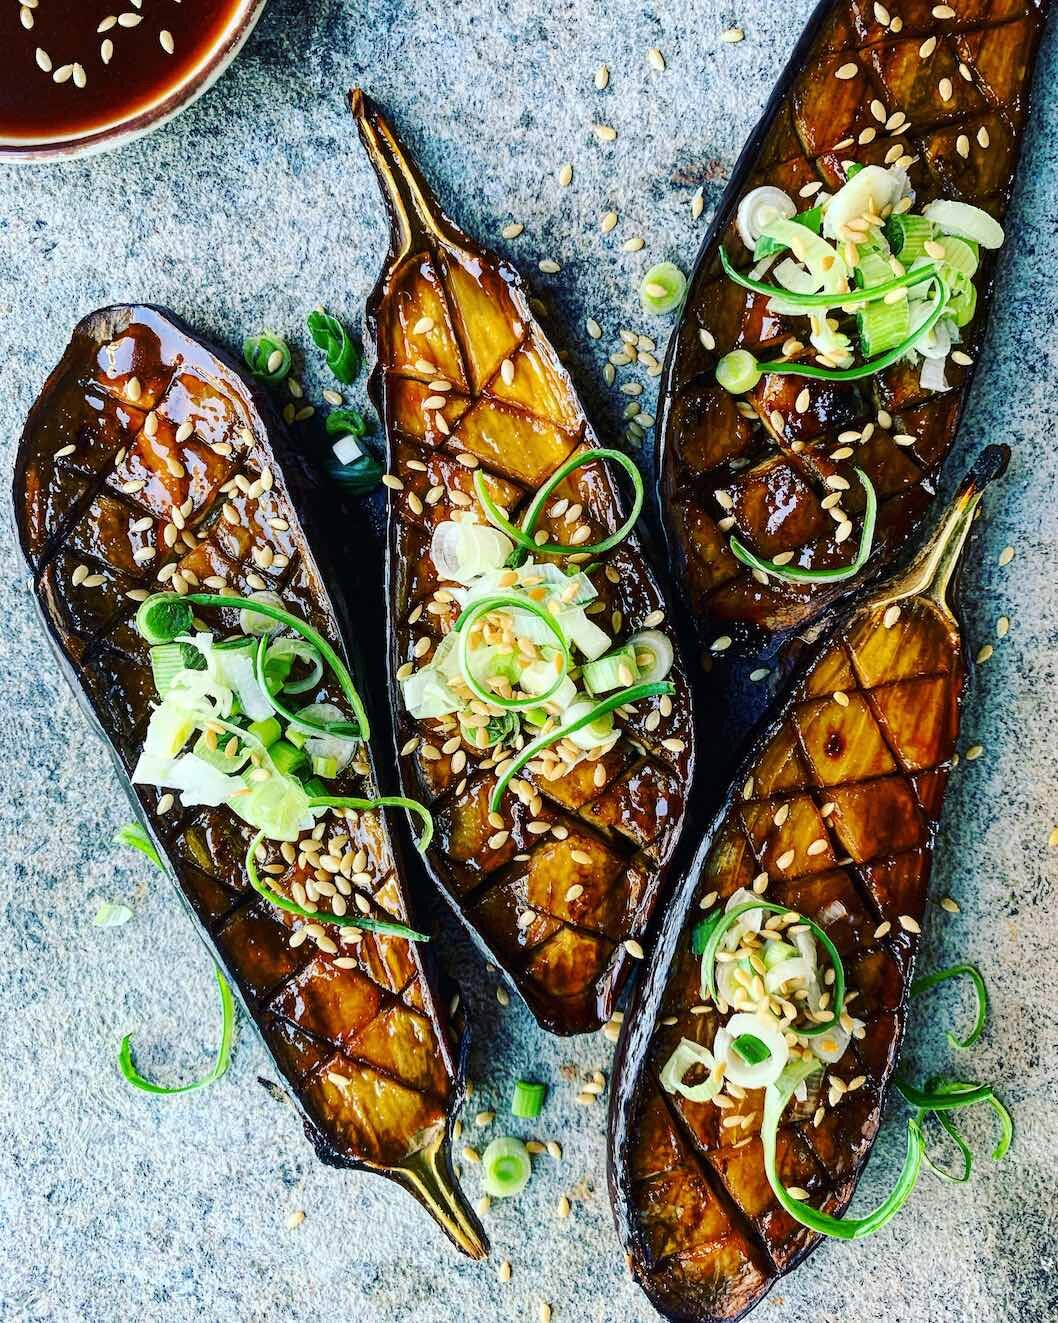 Recipe: Miso-glazed aubergine, Japanese style